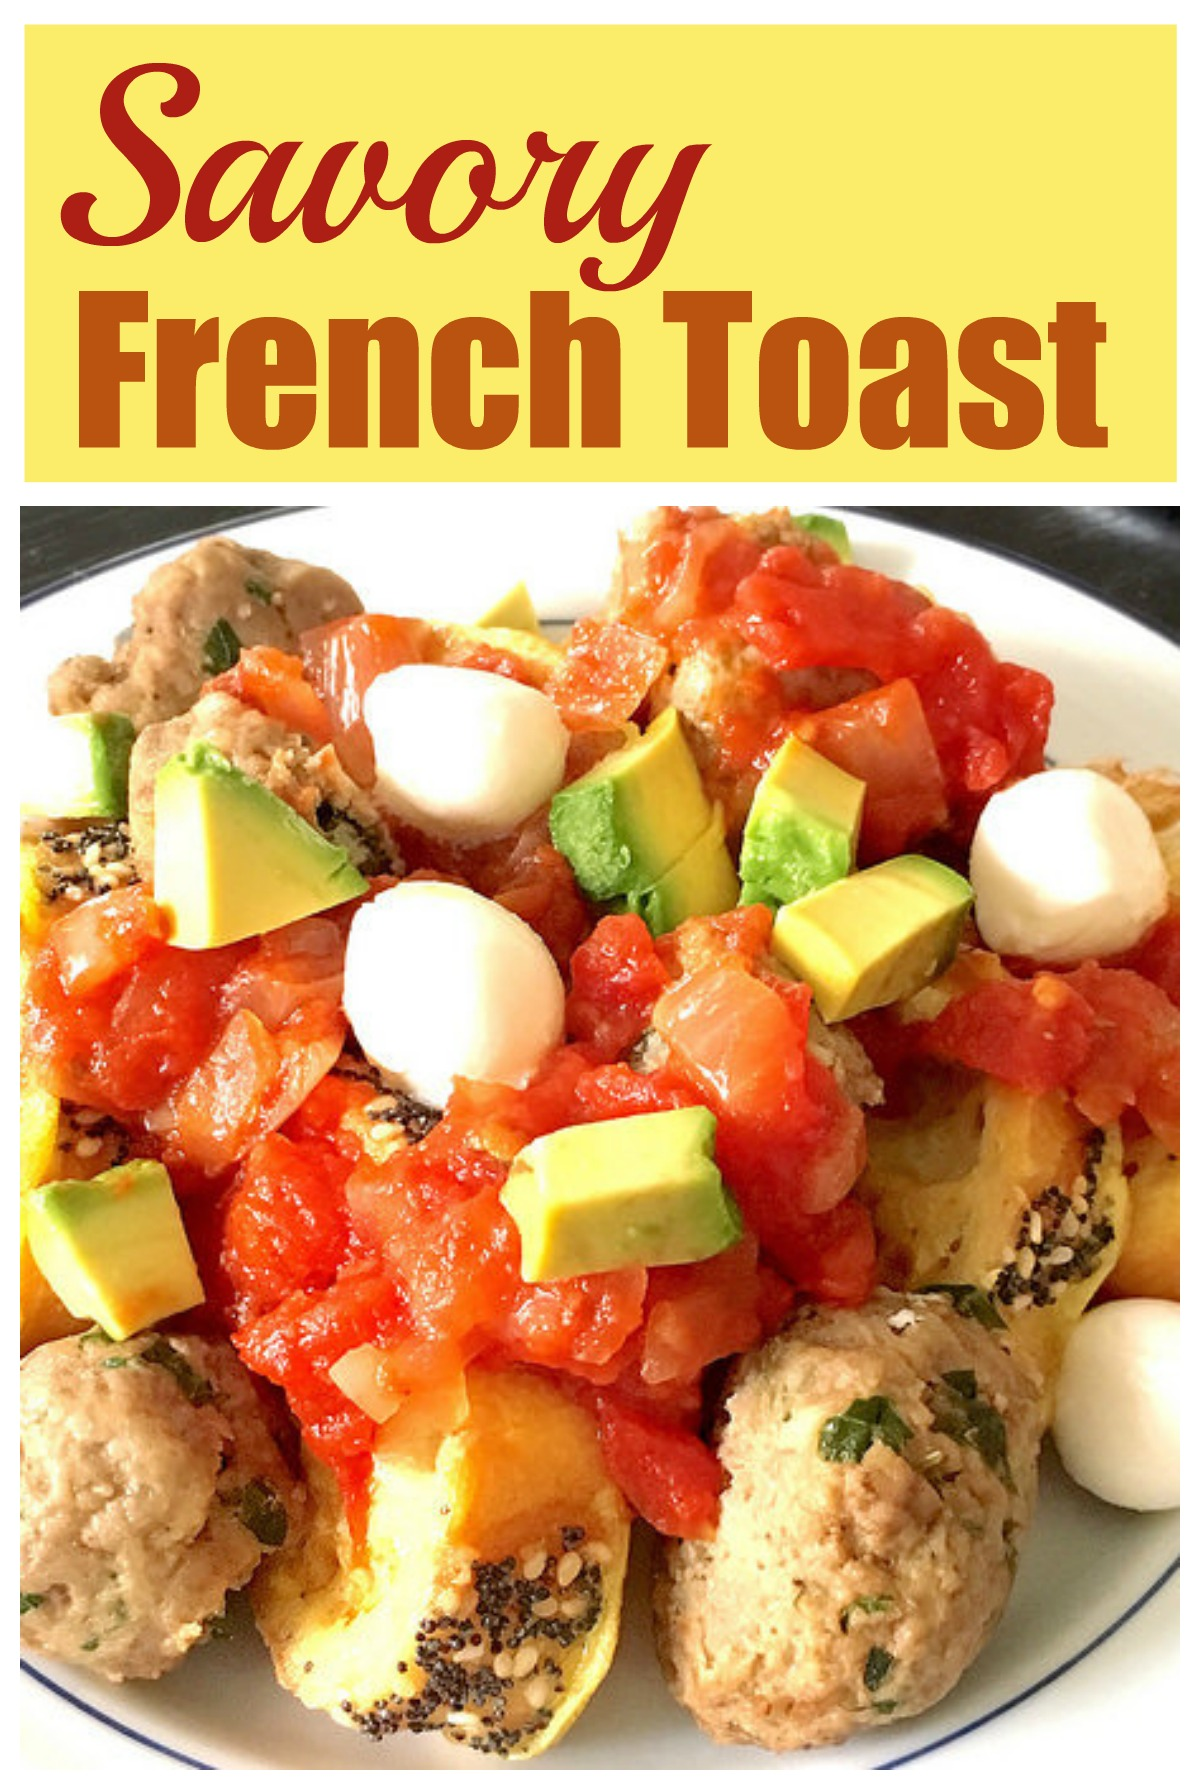 Savory French Toast with meatballs... perfect for breakfast or brinner!